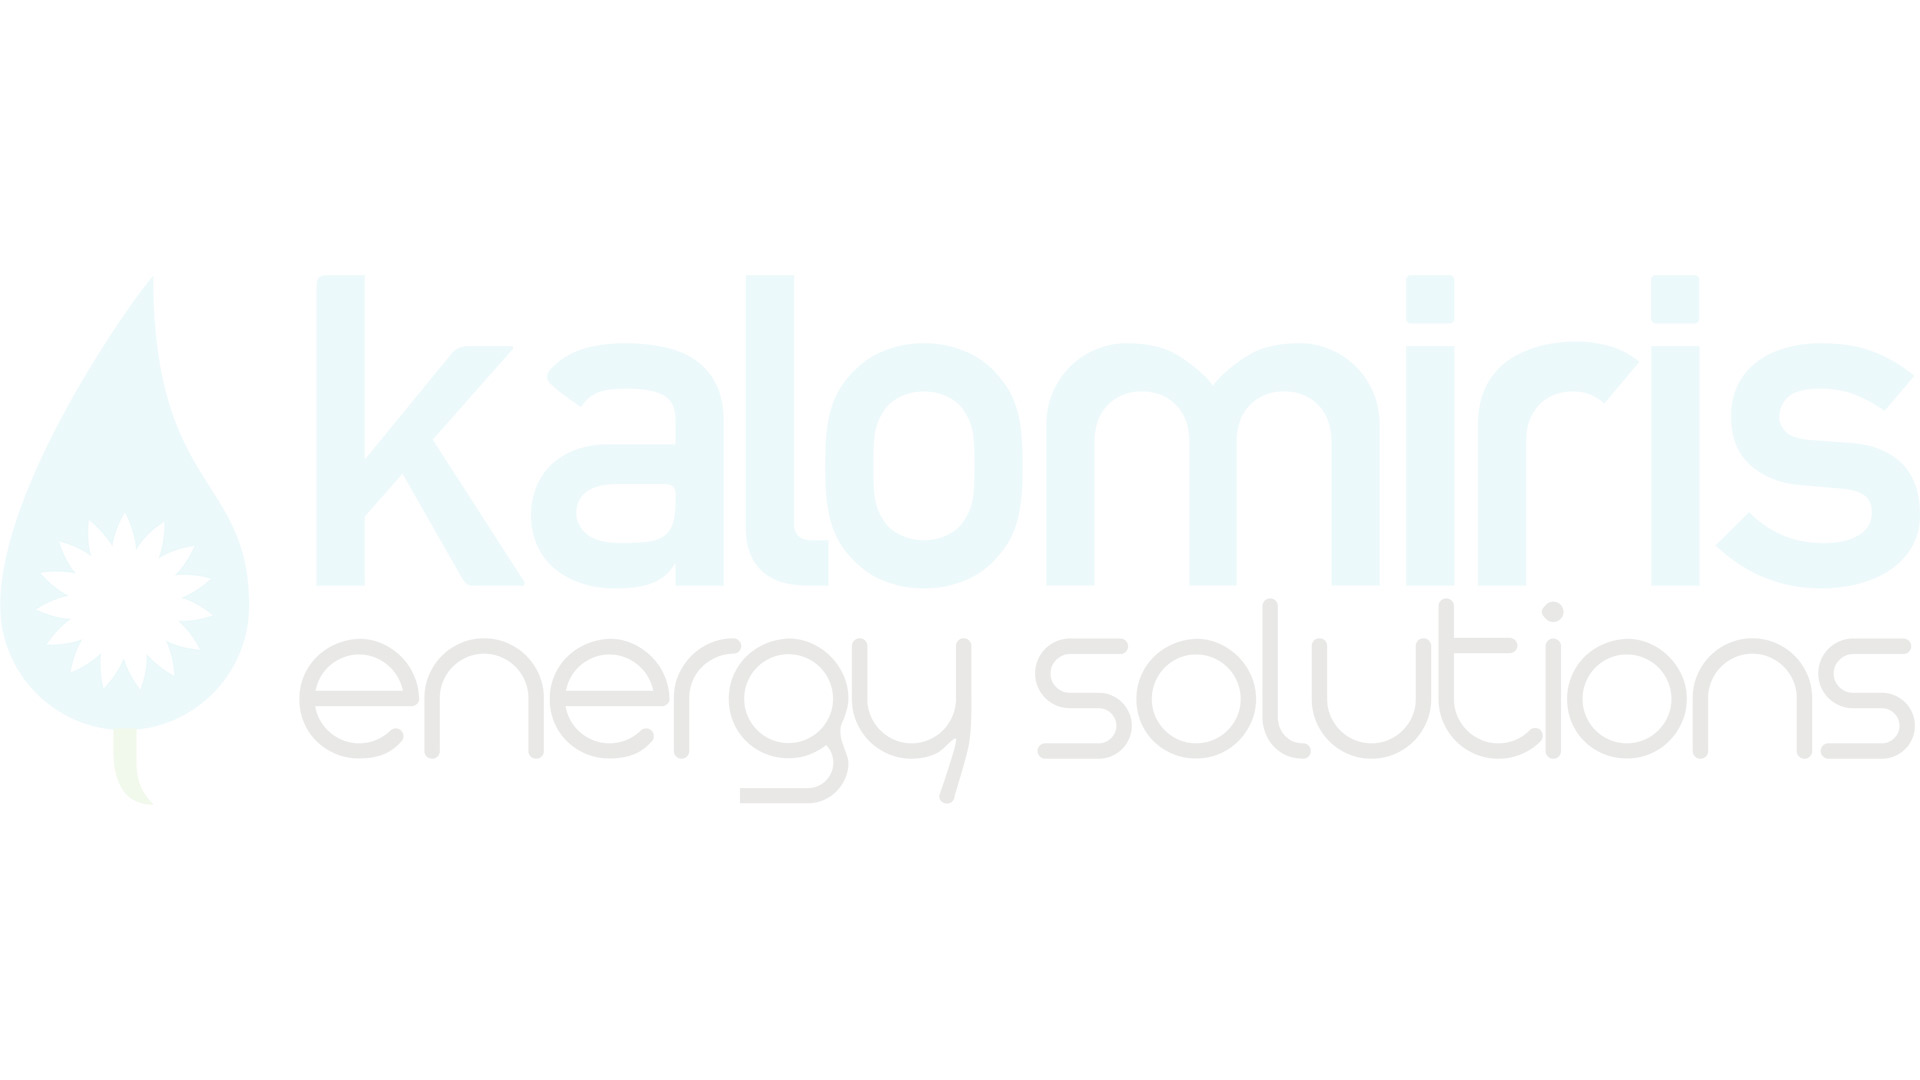 Ceiling Fan CASAFAN ECO AVIATOS 162 WE-WE 64 (162cm)